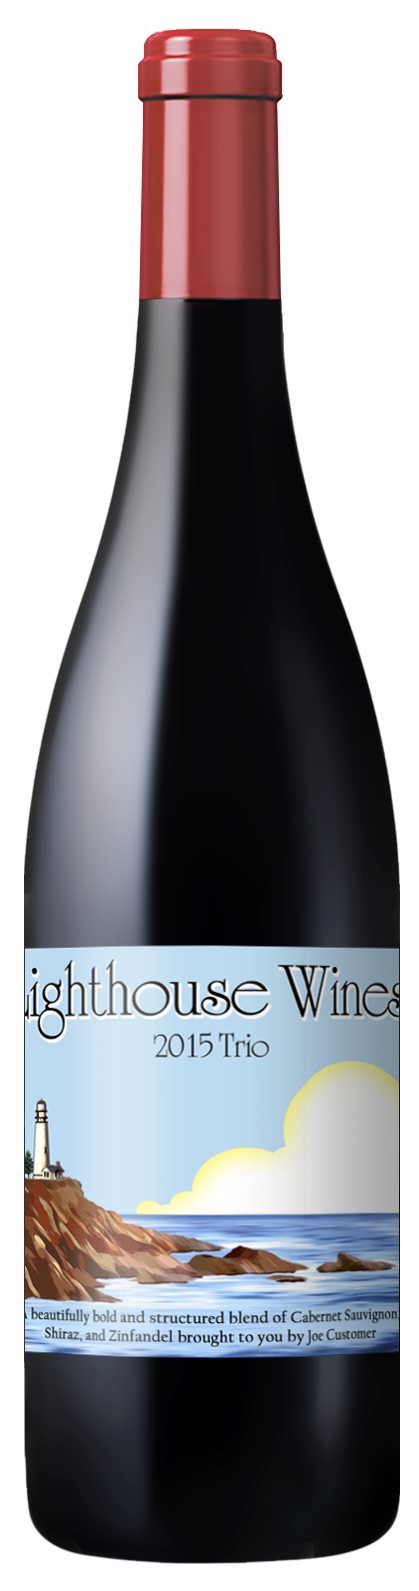 custom wine label with illustration of lighthouse on a cliff